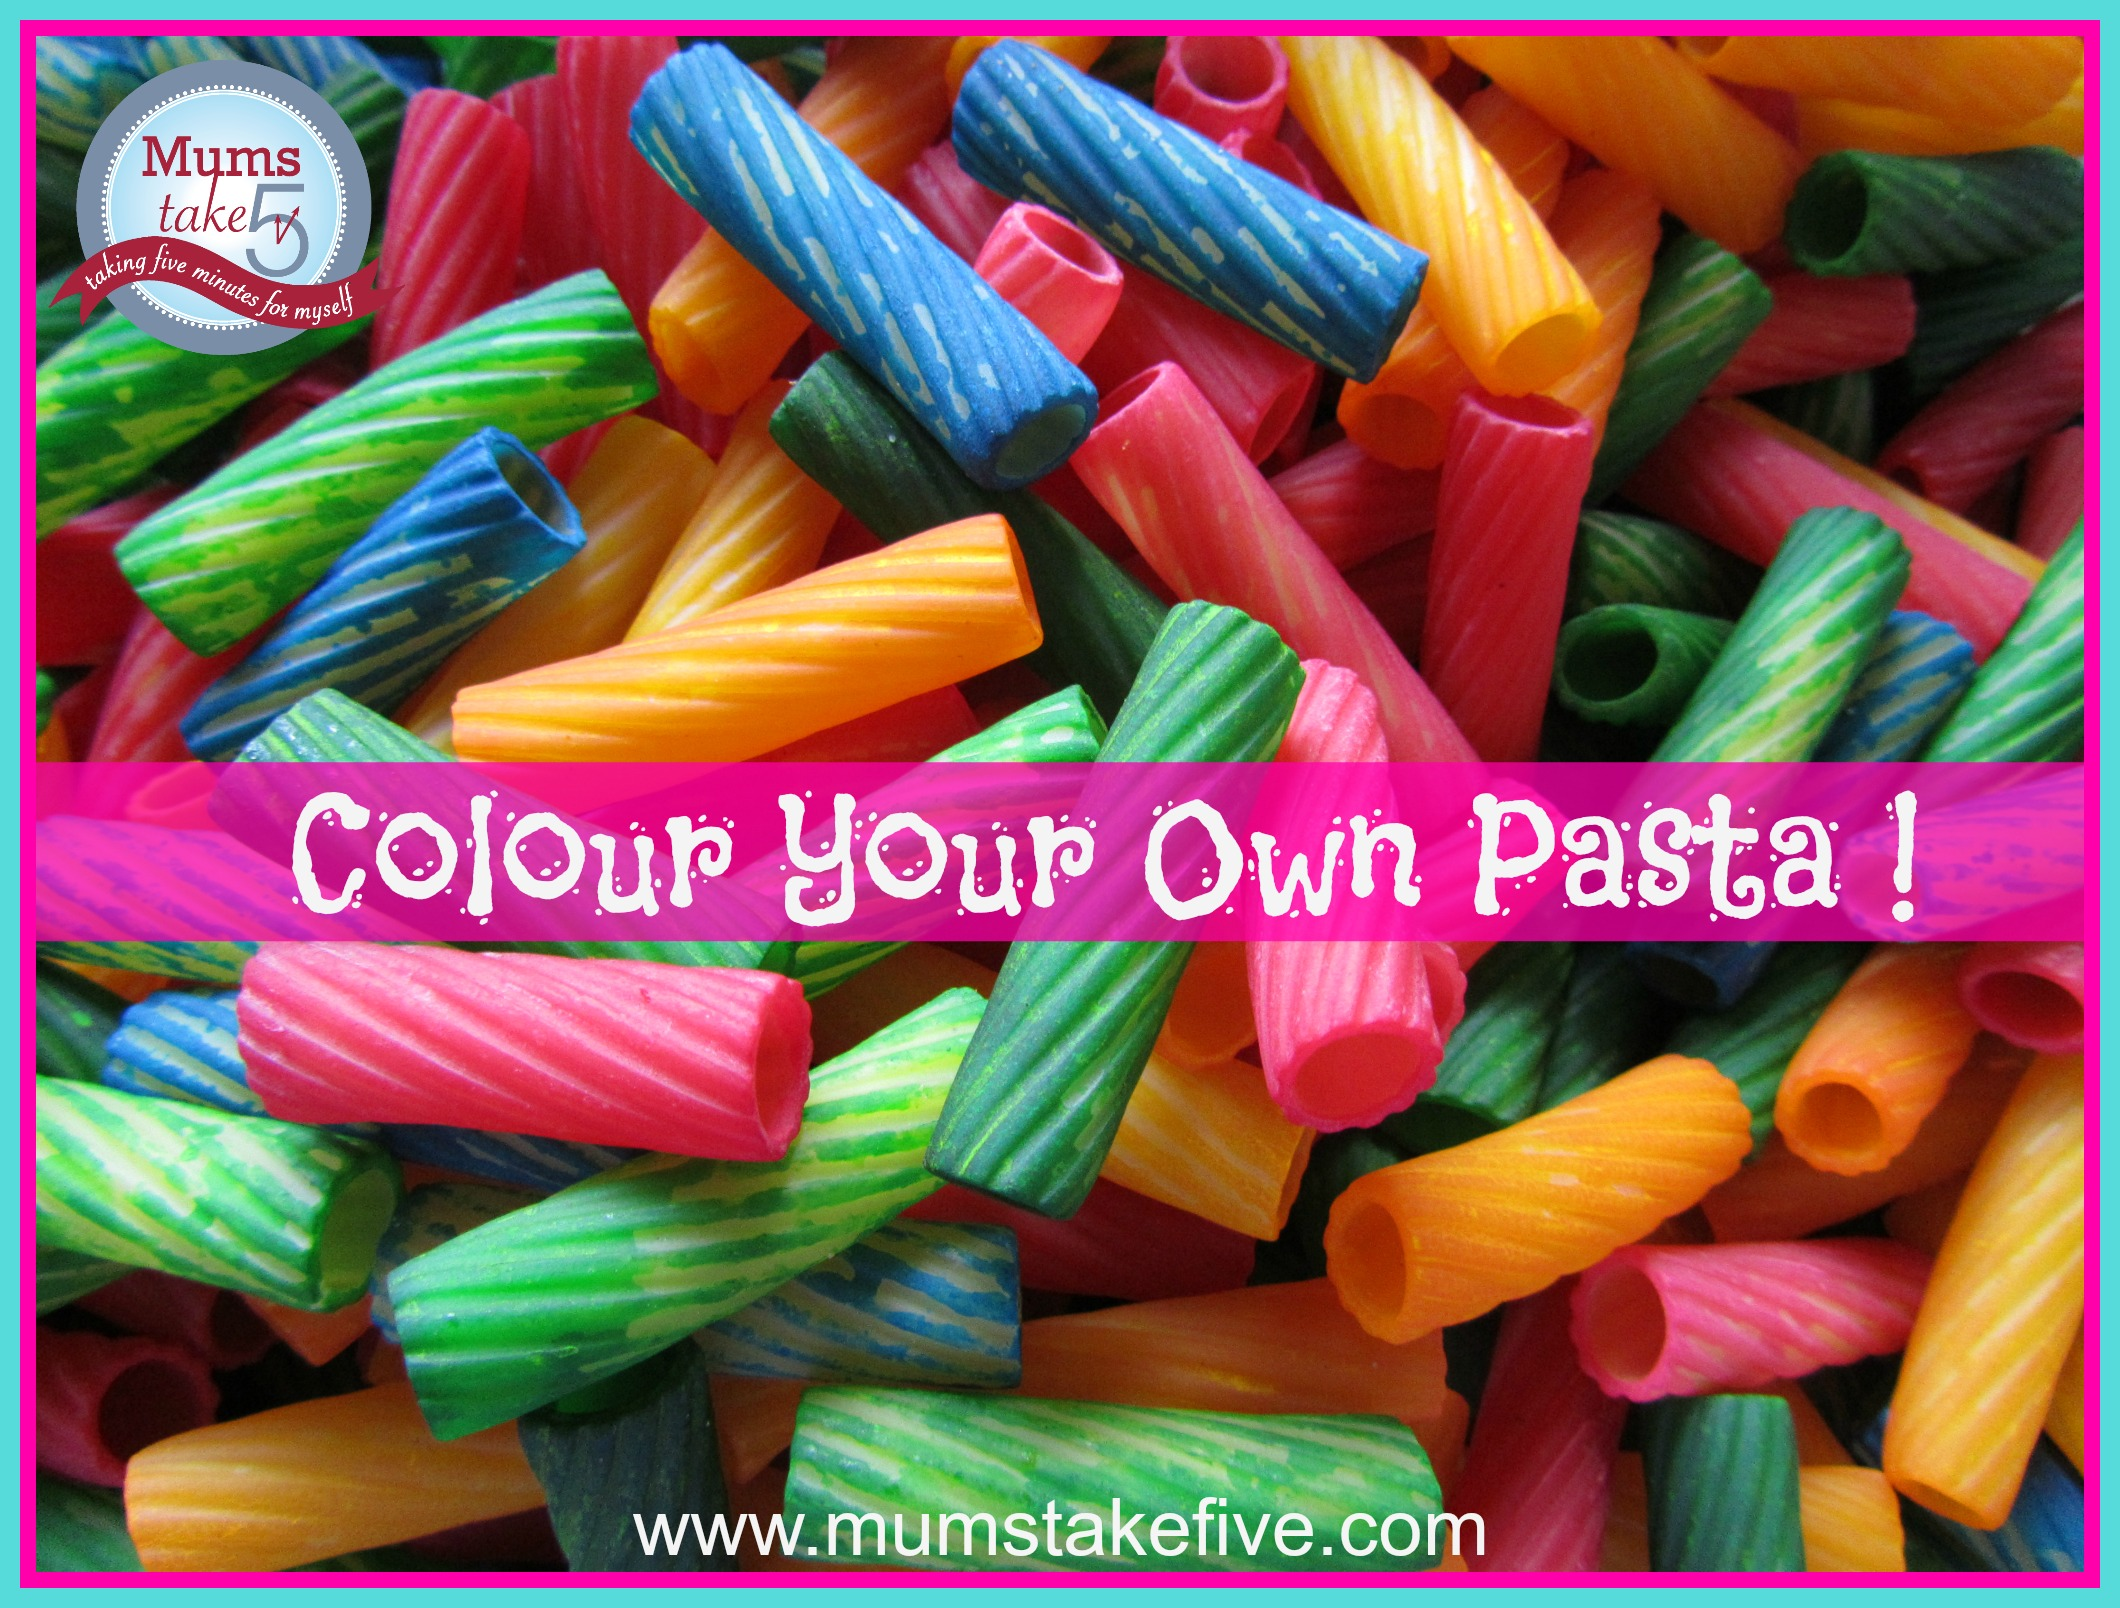 Colour your own pasta